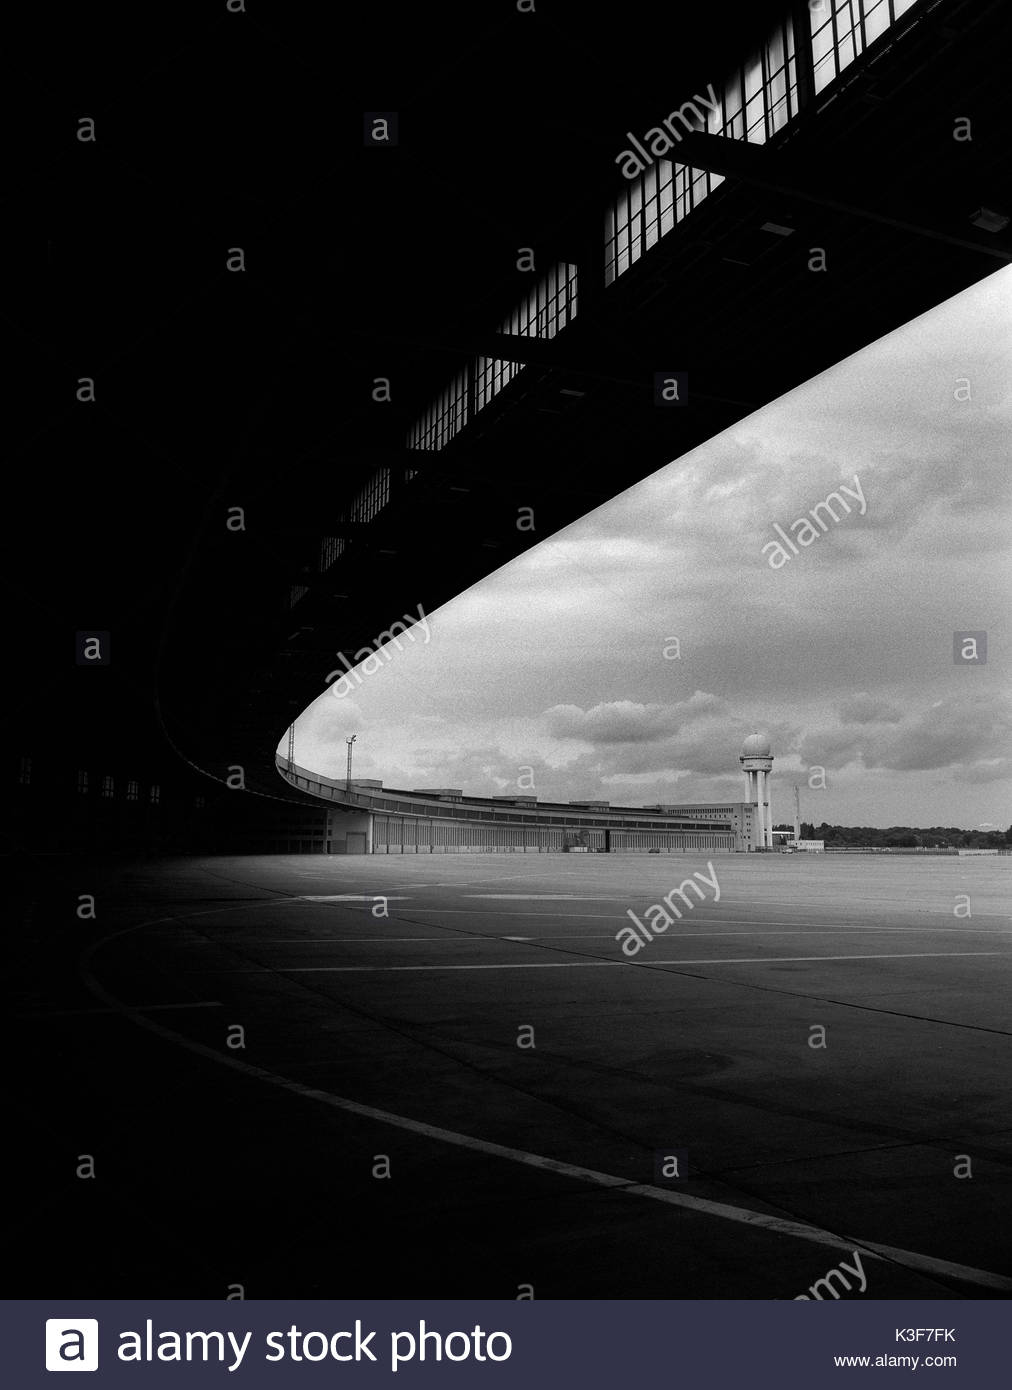 Tempelhof Airport Exterior, Berlin, Germany - Stock Image